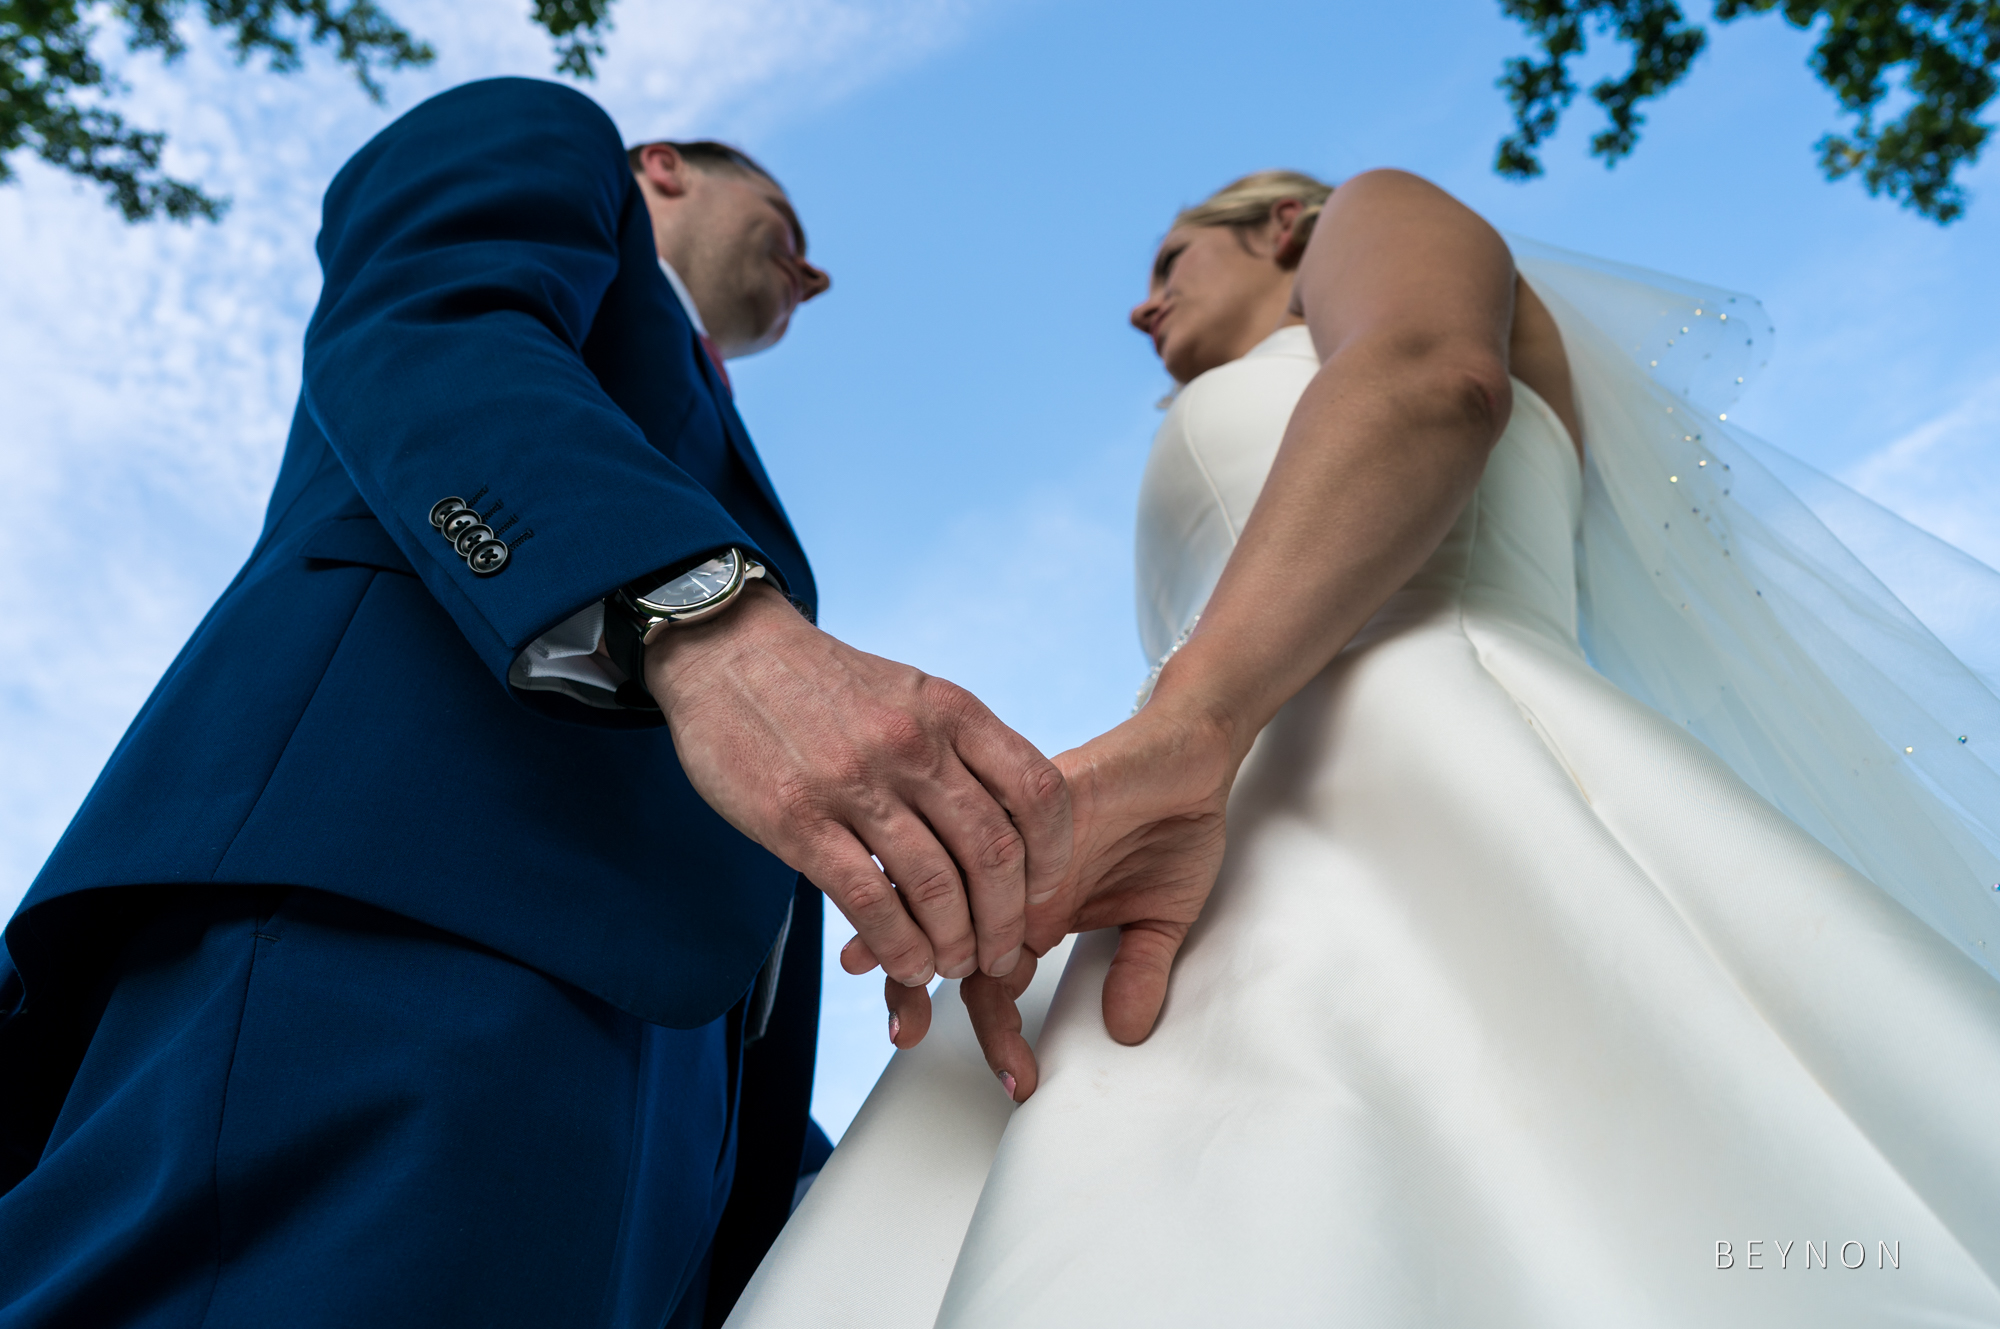 The newlyweds hold hands